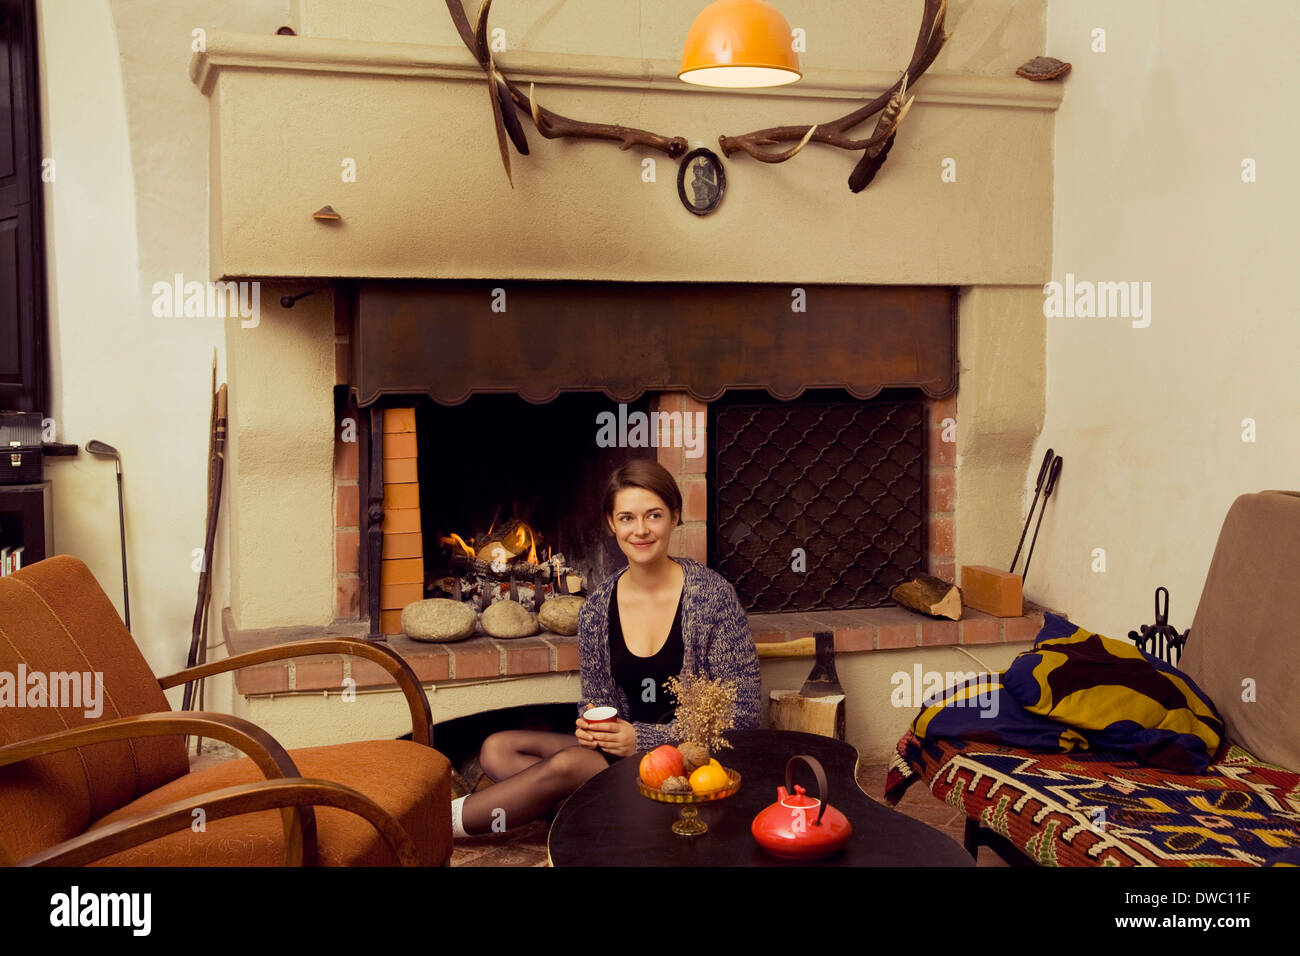 Portrait of young woman sitting on floor next to fireplace Stock Photo